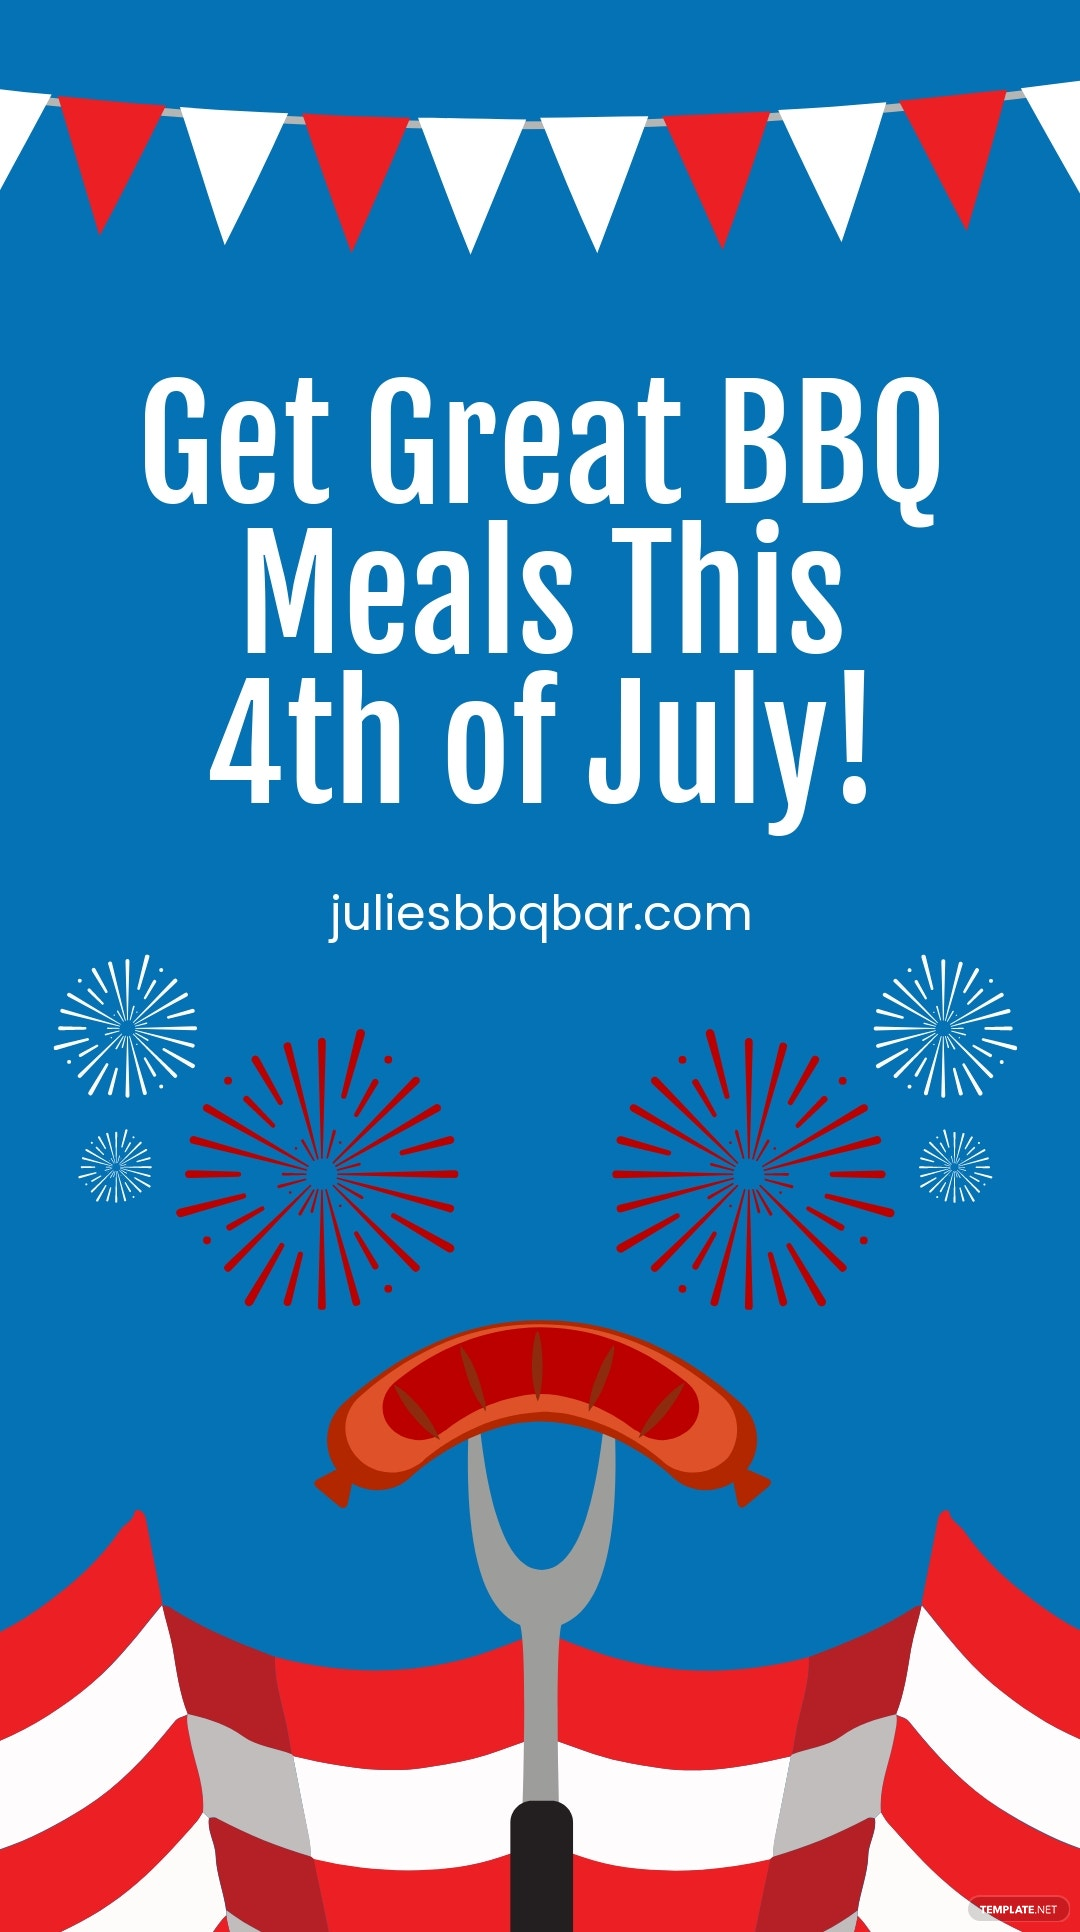 4th Of July Bbq Instagram Story Template.jpe